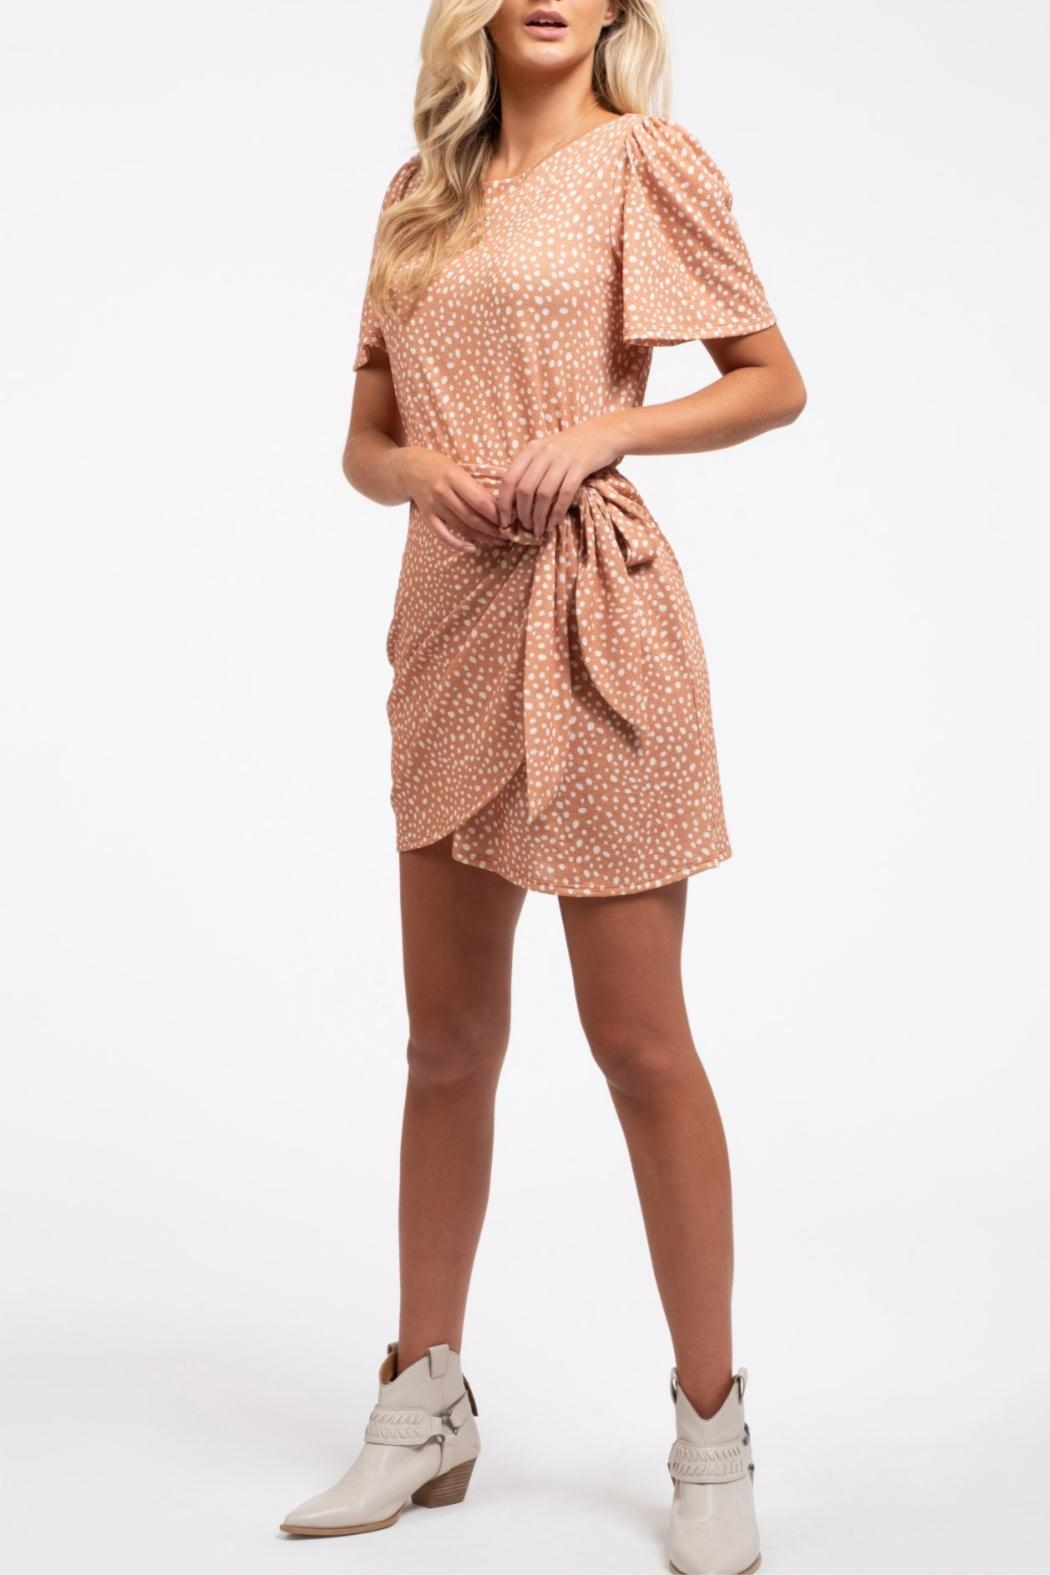 Blu Pepper Wrapped-In-Dots Dress - Back Cropped Image